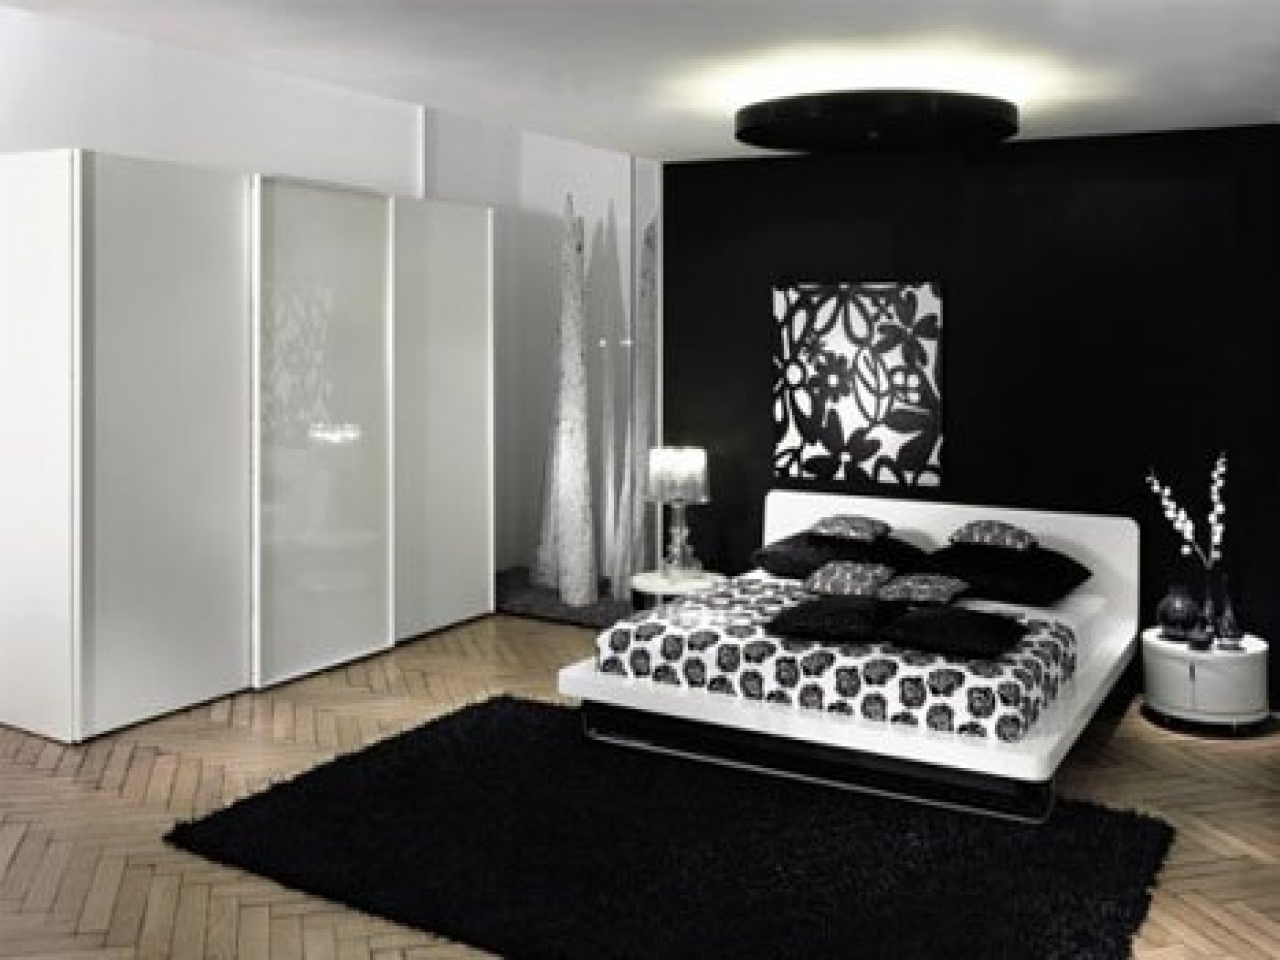 Bedroom Decor Ideas Home Best Home Decor Ideas Bedroom